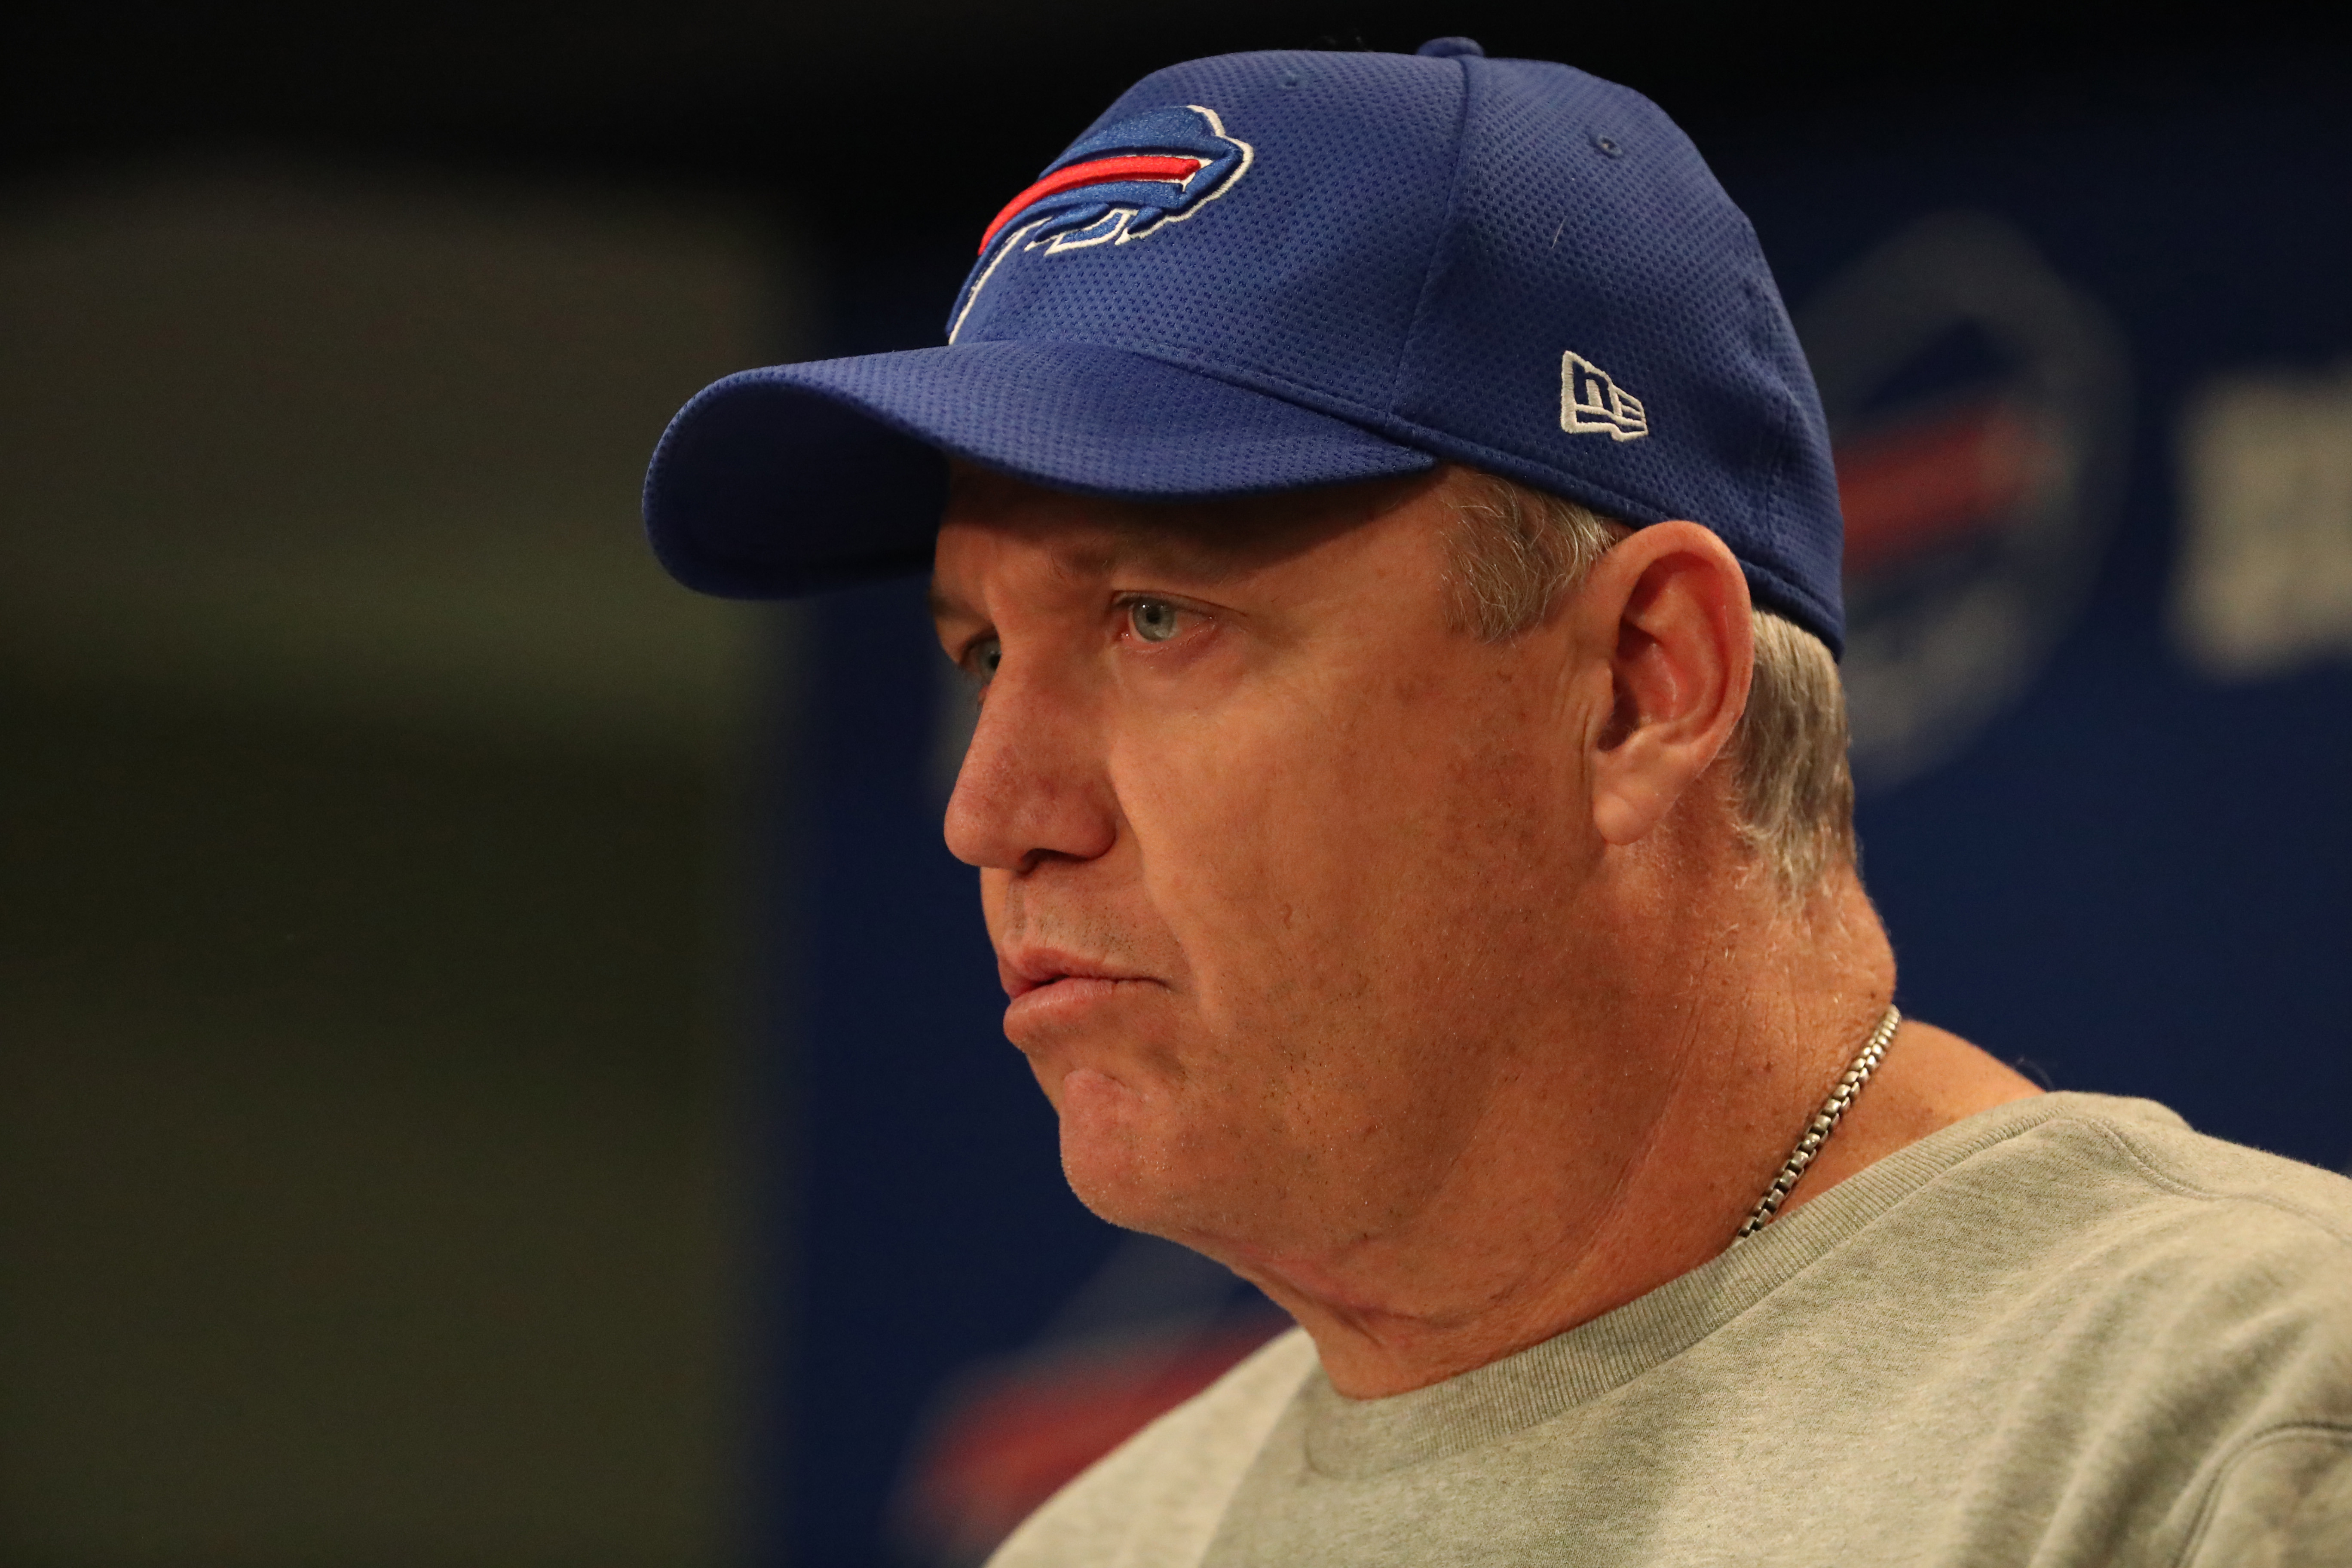 Buffalo Bills head coach Rex Ryan talks to the press at his weekly press conference at ADPRO Sports Training Center  in Buffalo N.Y. on Wednesday, Dec. 14, 2016.  (James P. McCoy/Buffalo News)